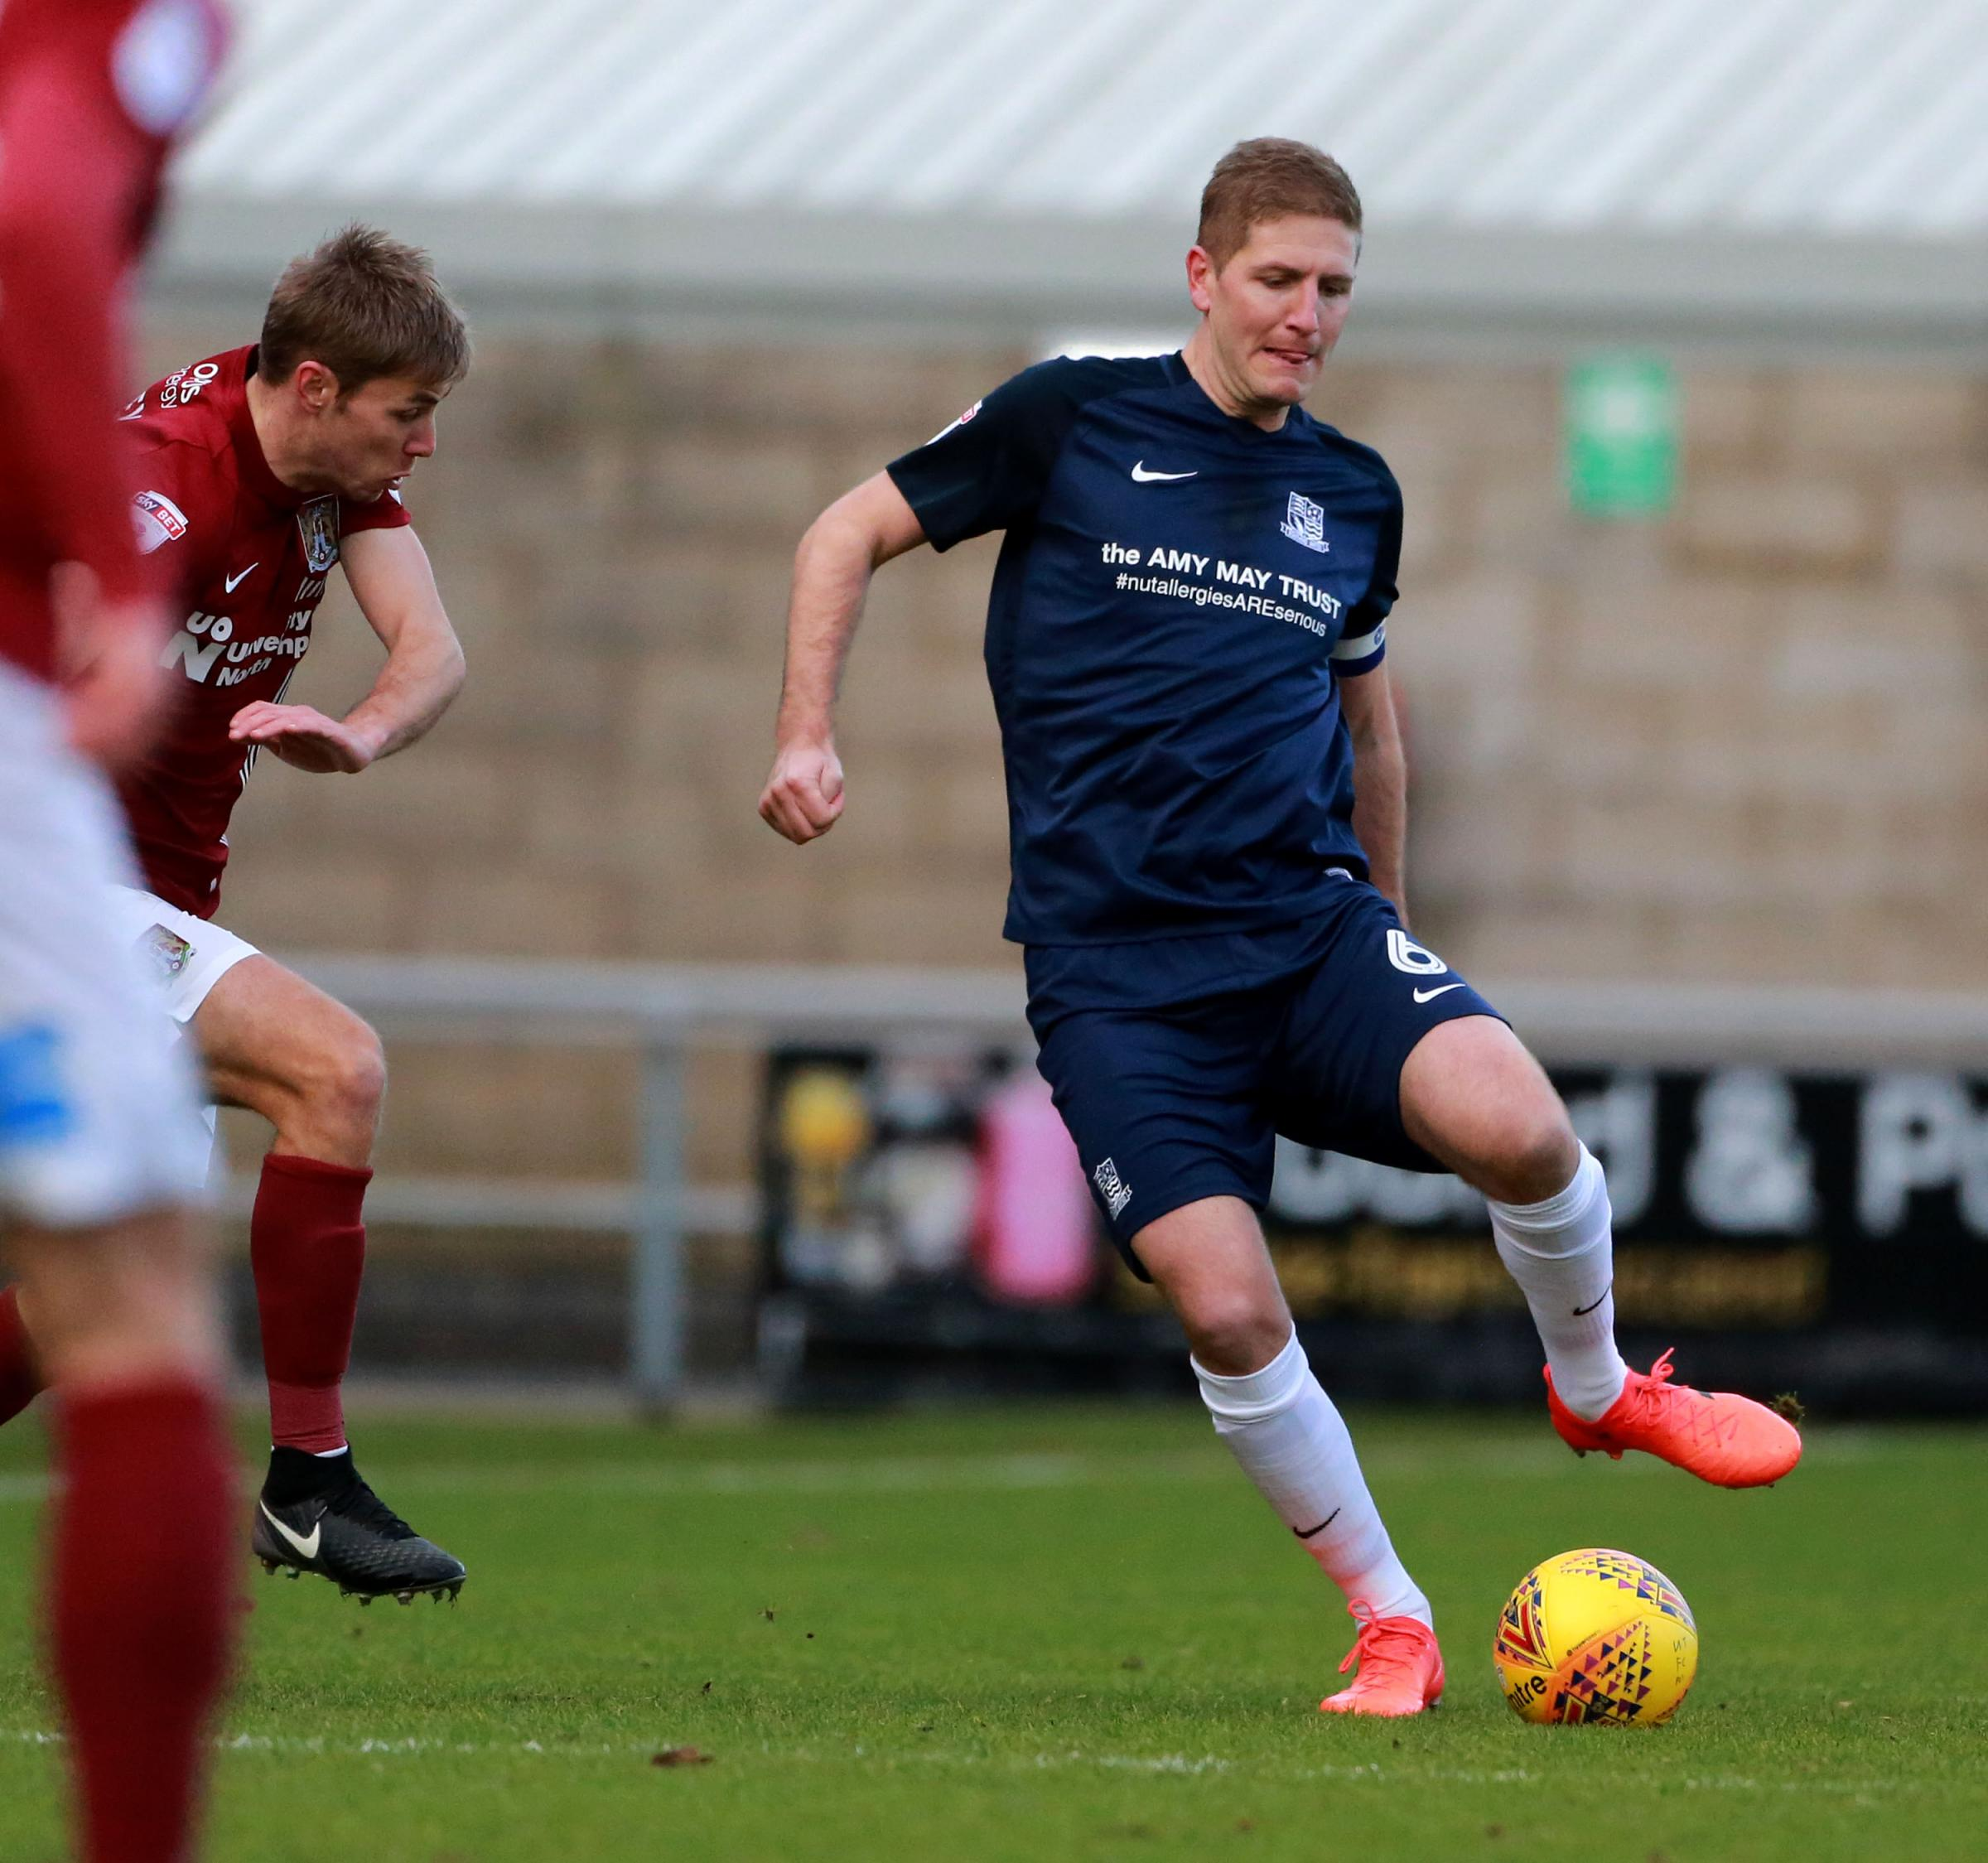 Keen to kick on - Southend United defender Michael Turner